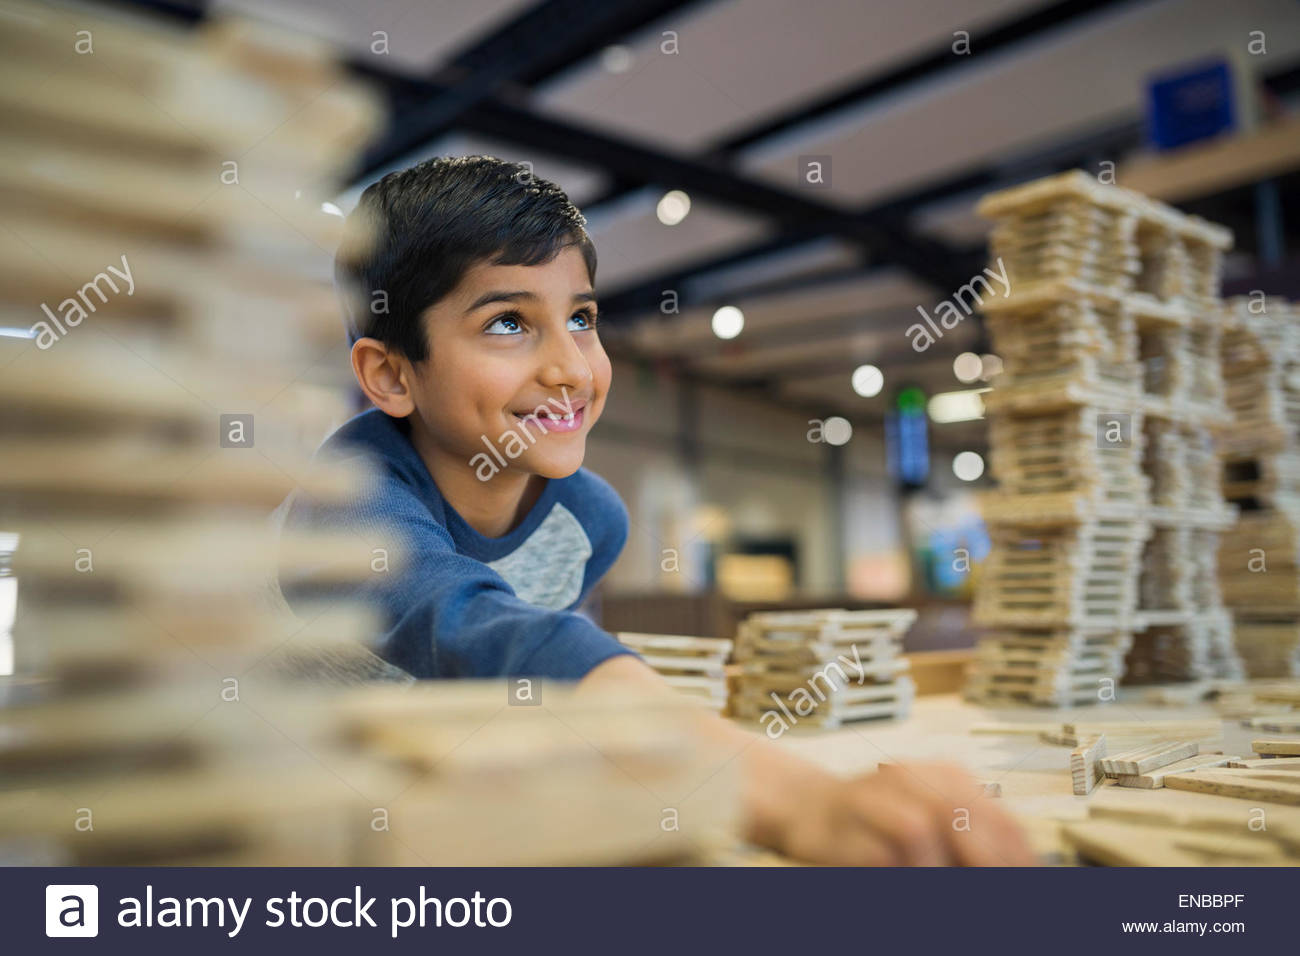 Boy assembling wood block structure at science center - Stock Image